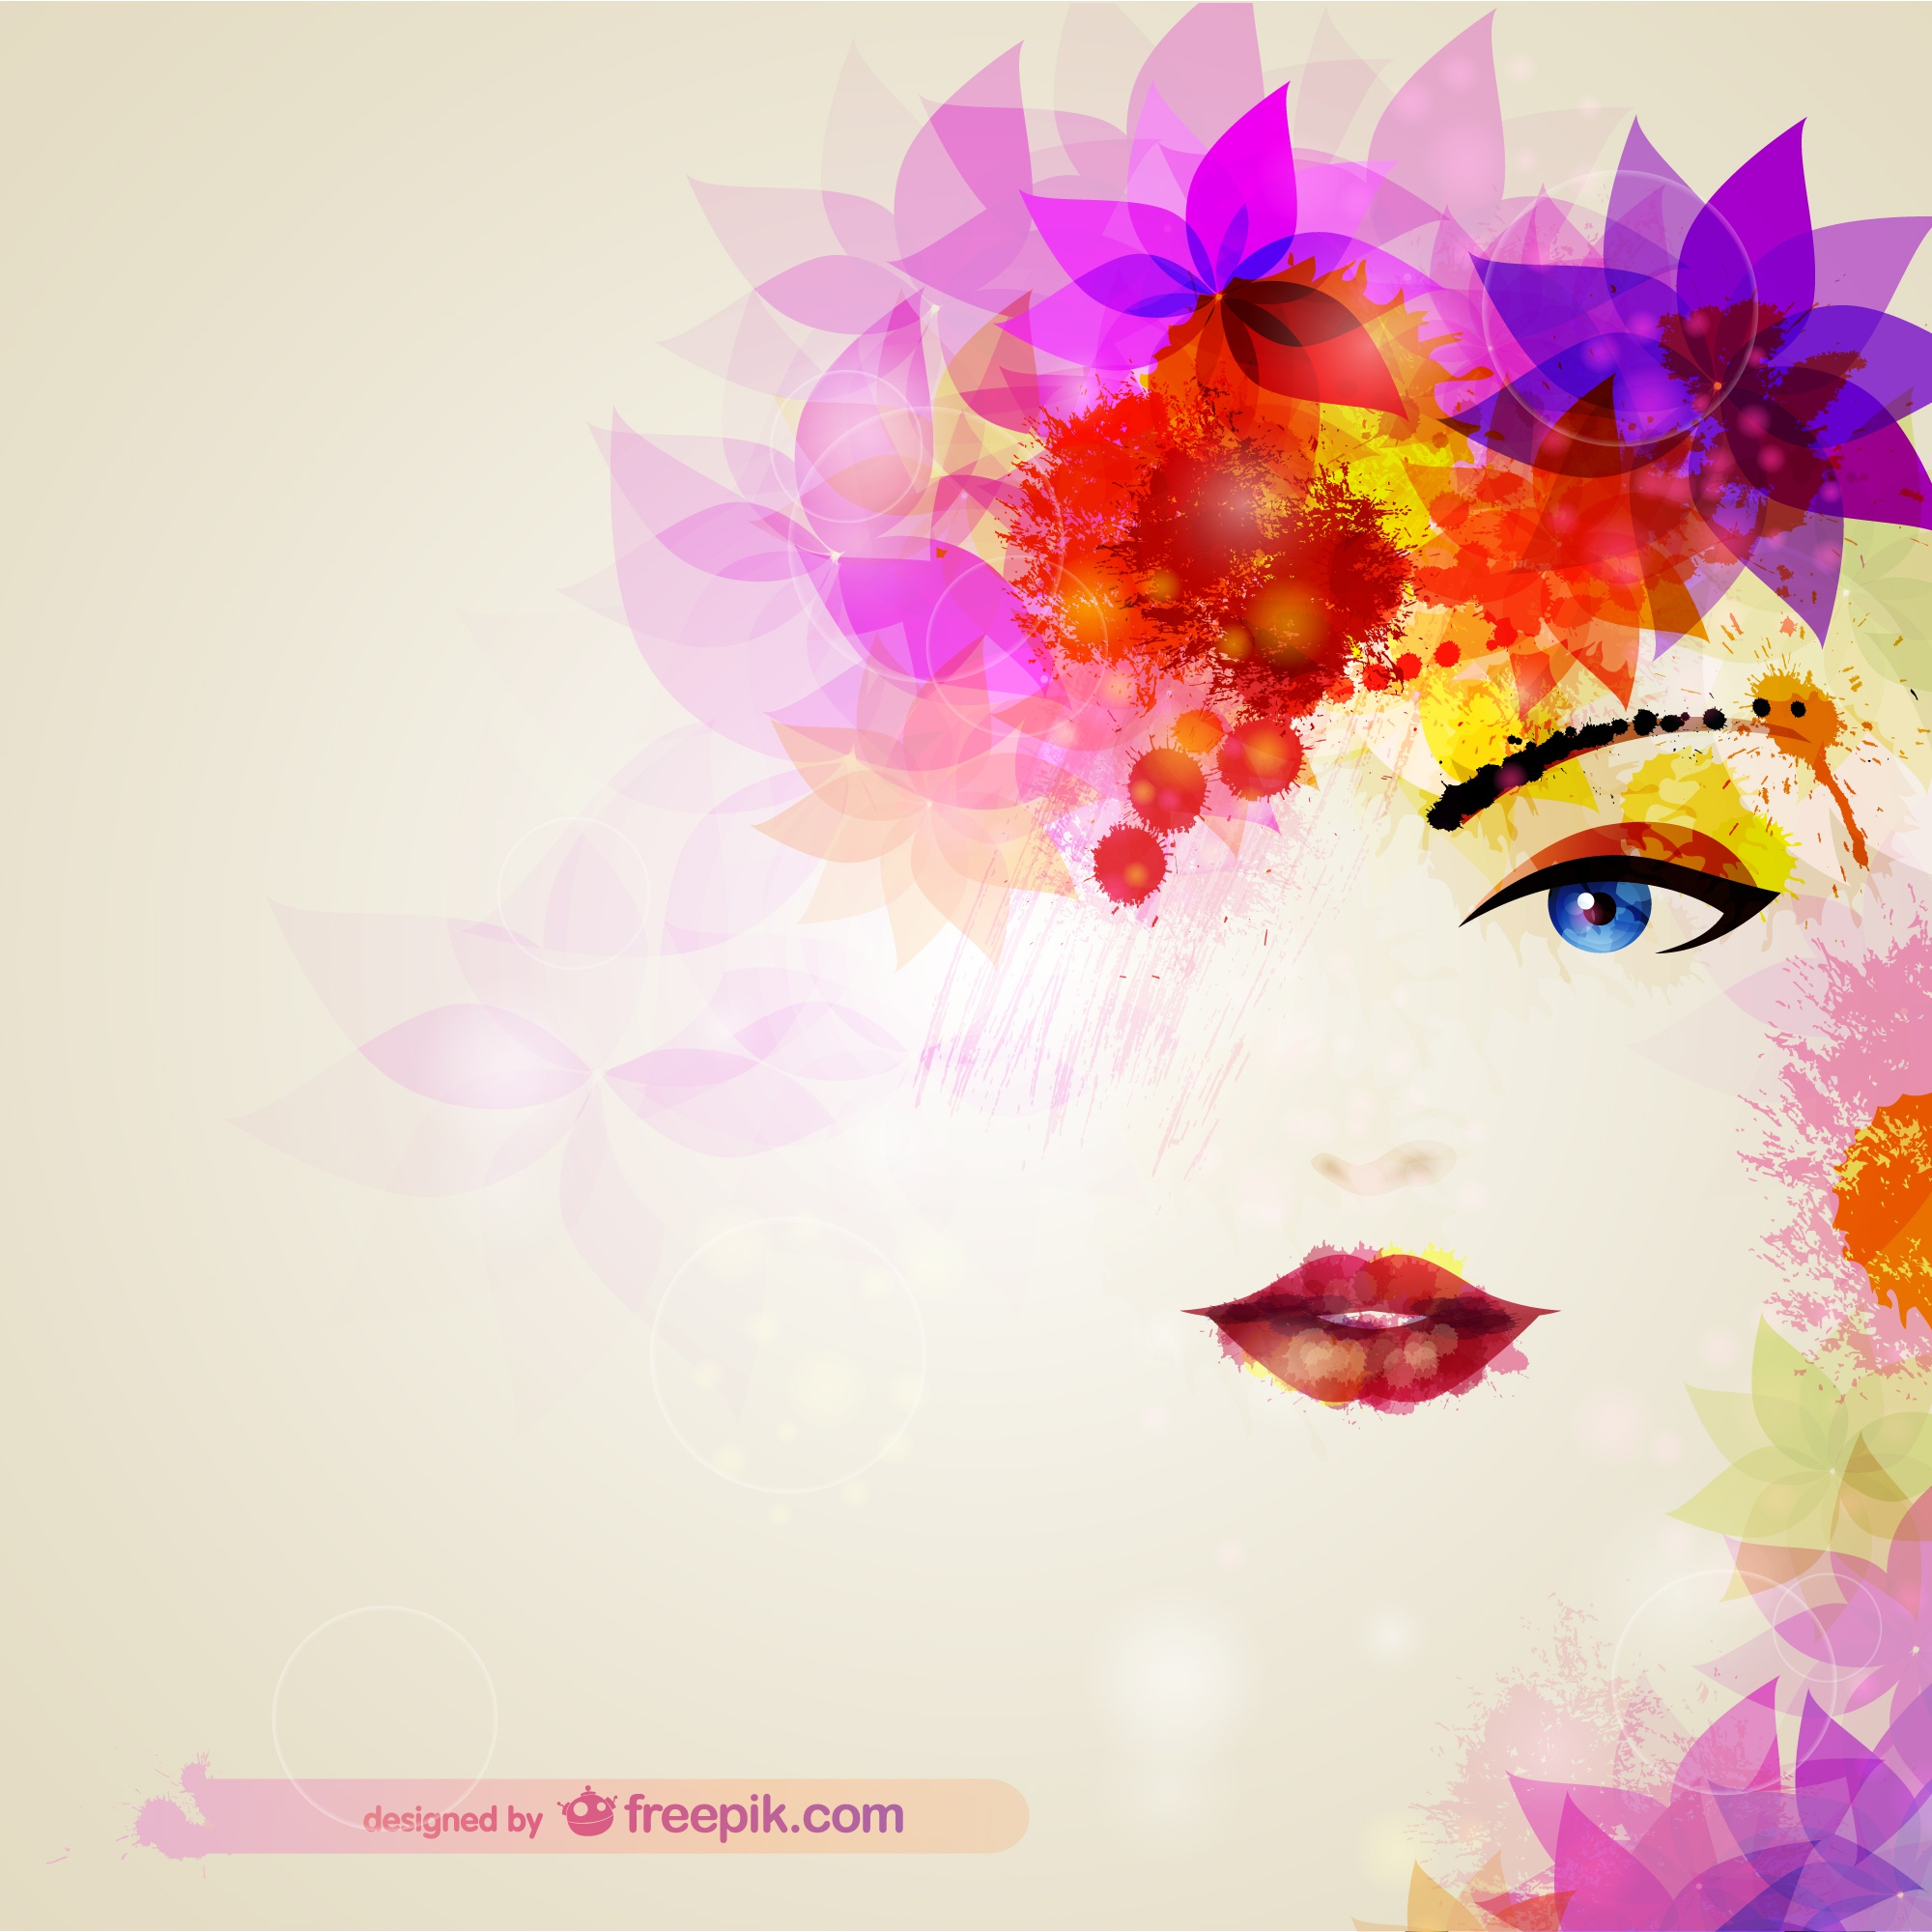 Glossy vector woman illustration